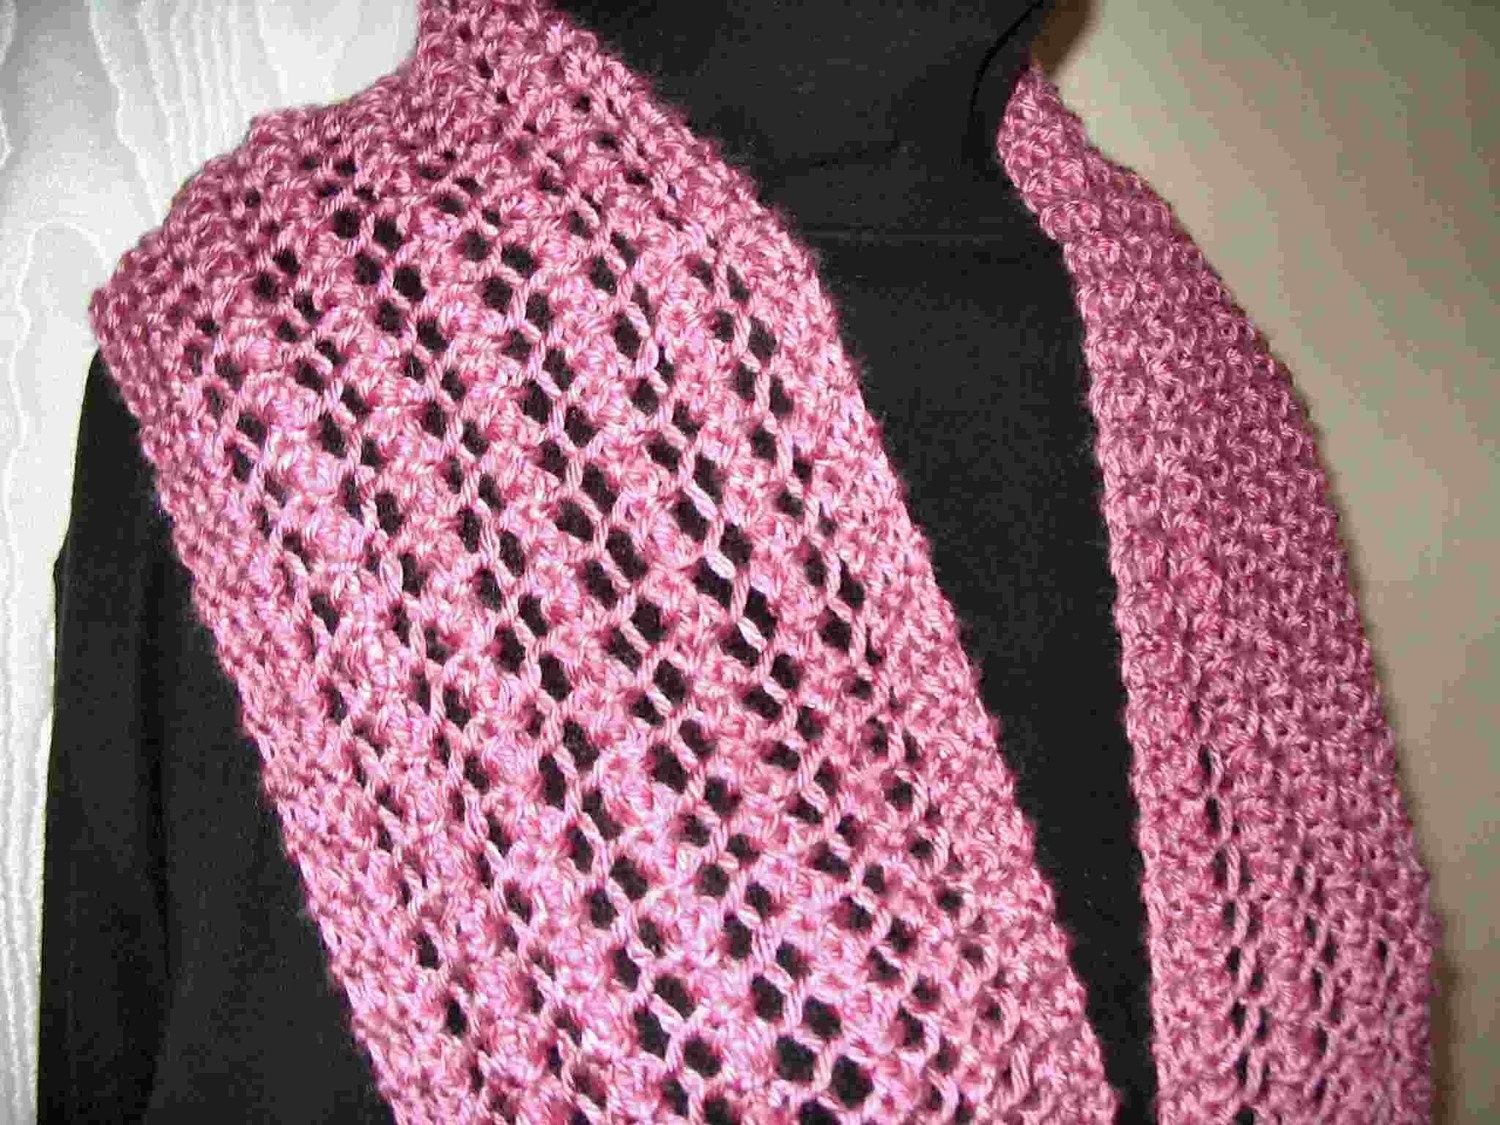 Knitted lace scarf Four patterns in One Easy to knit one row